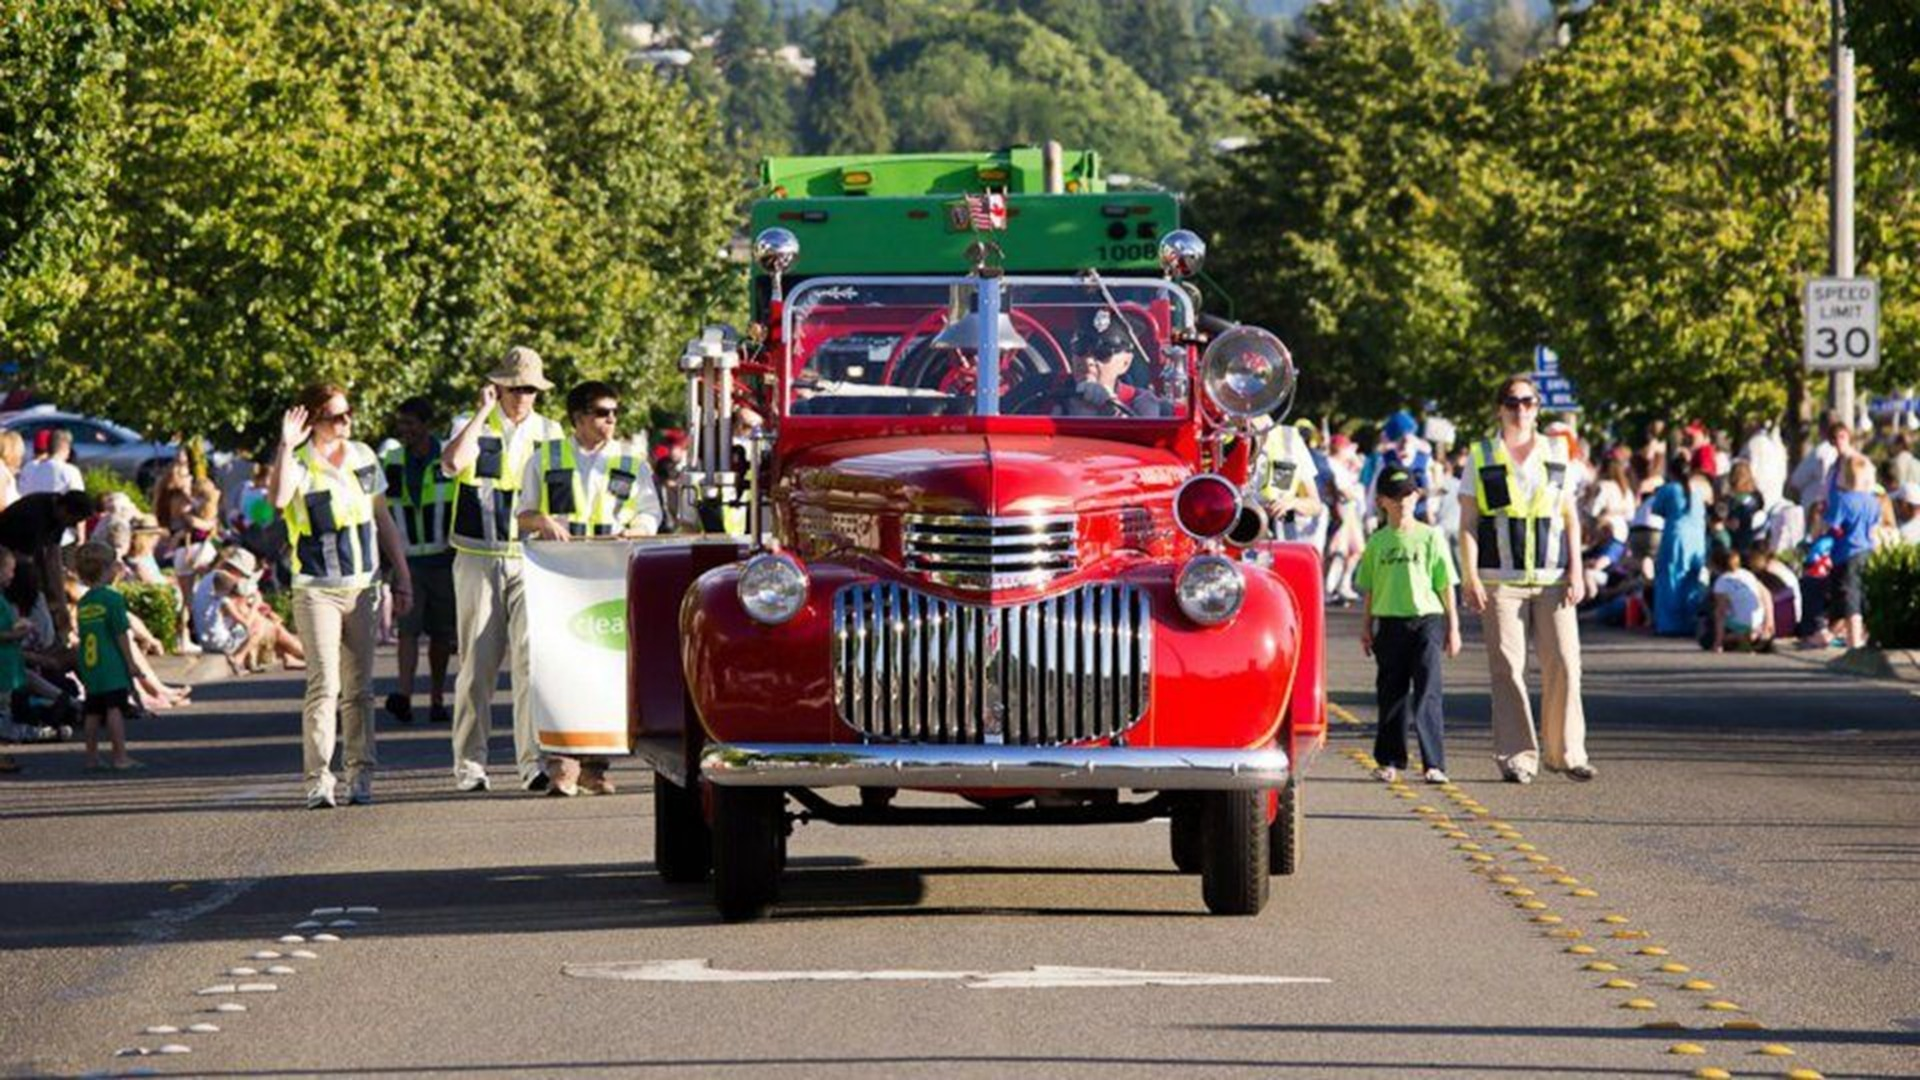 SeaFair Sanctioned Waterland Parade